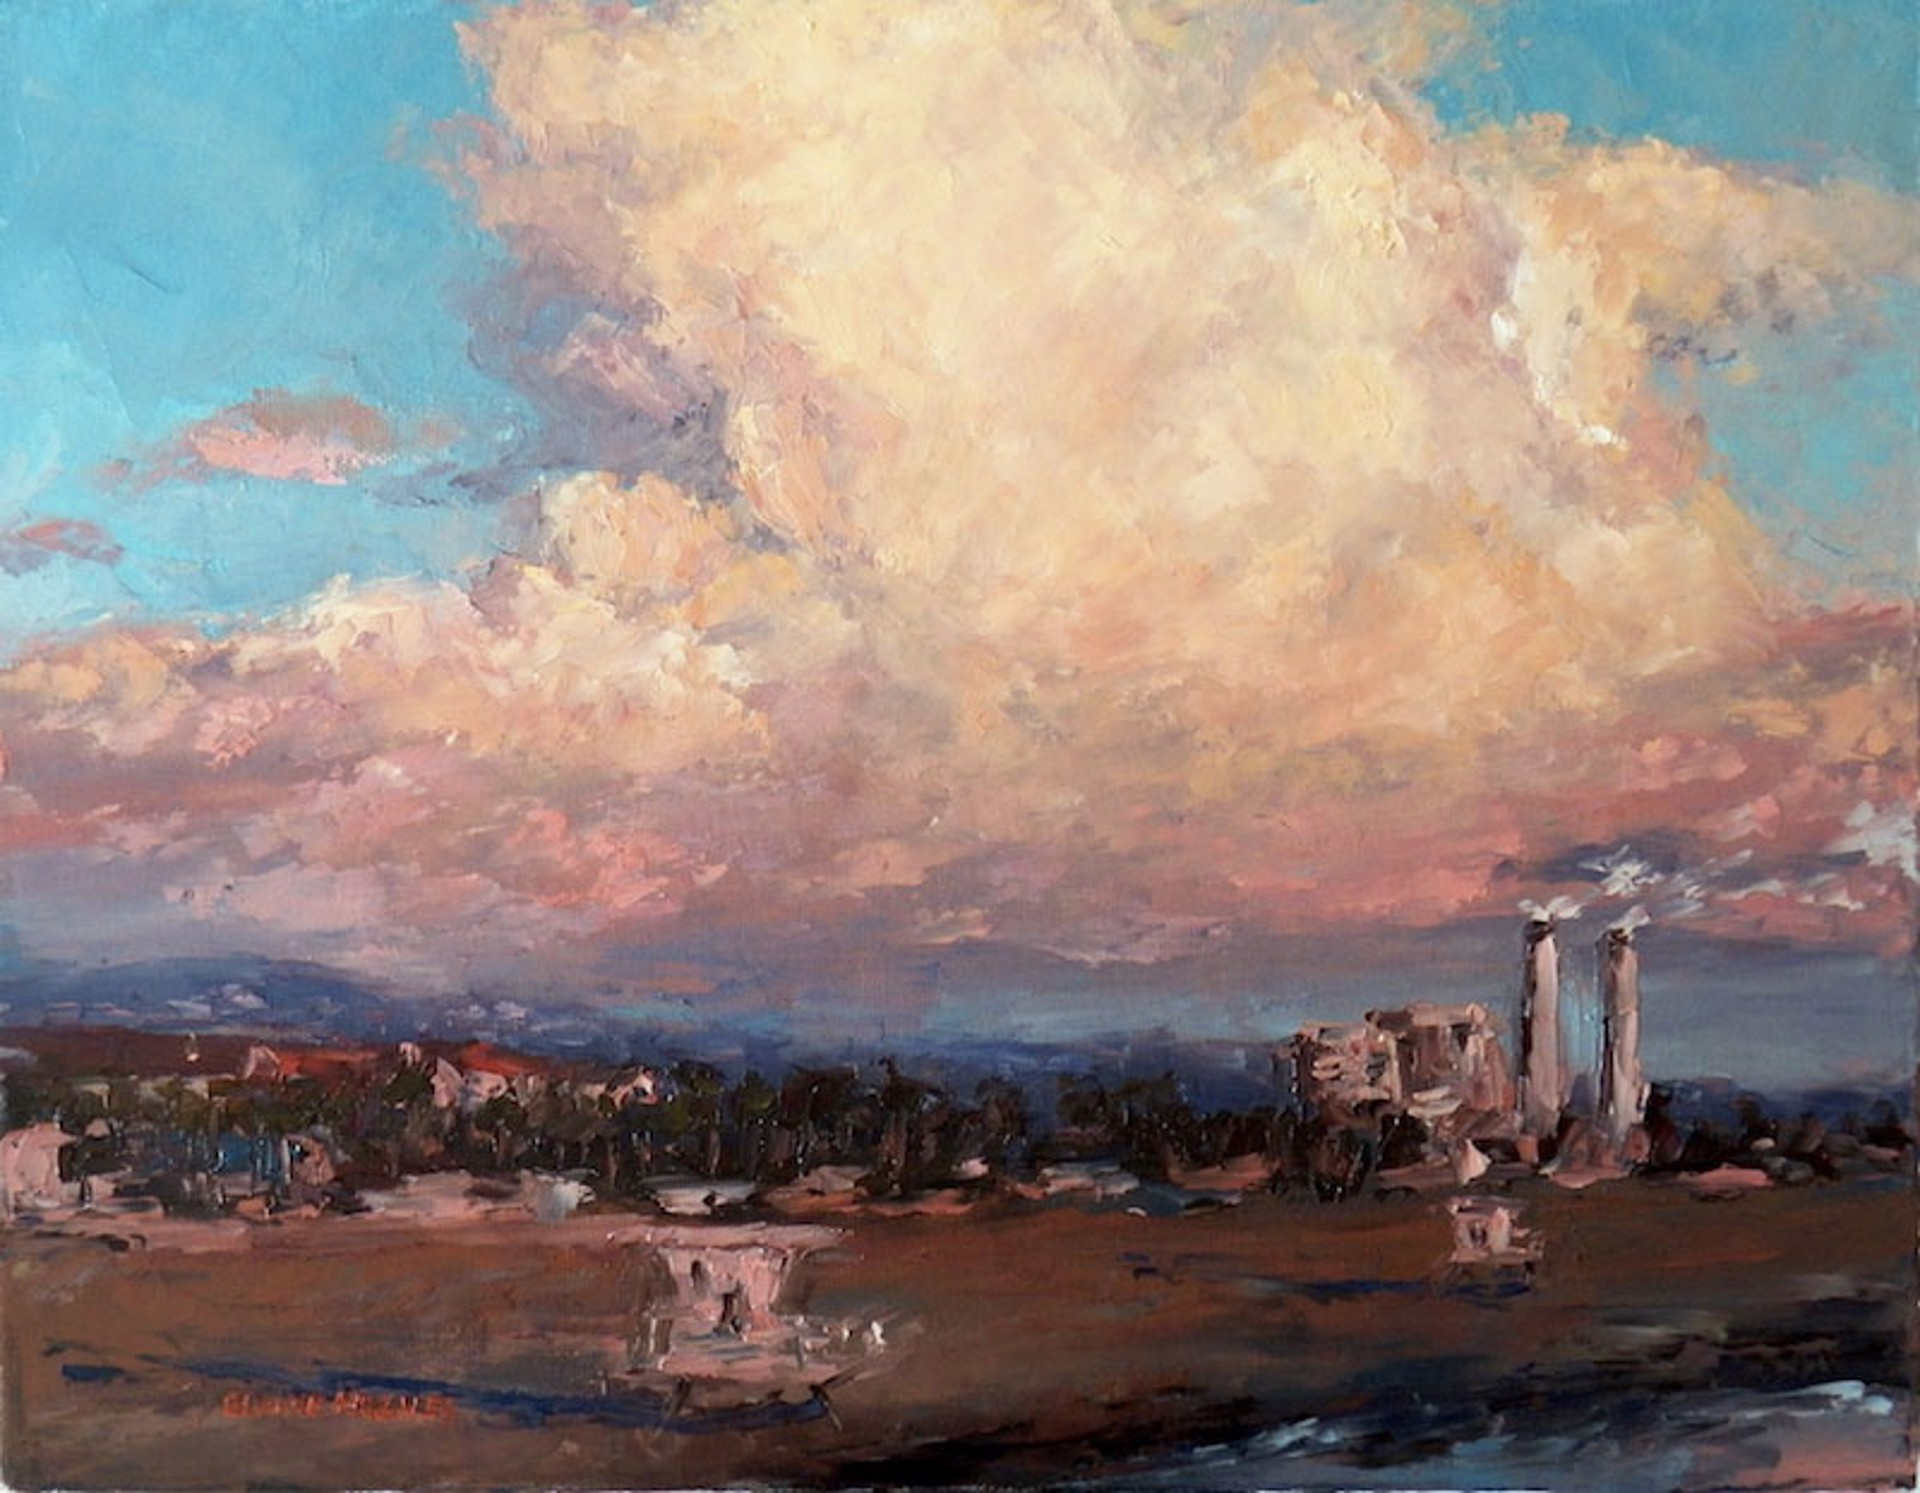 Clouds And Coastline by Elaine Hughes